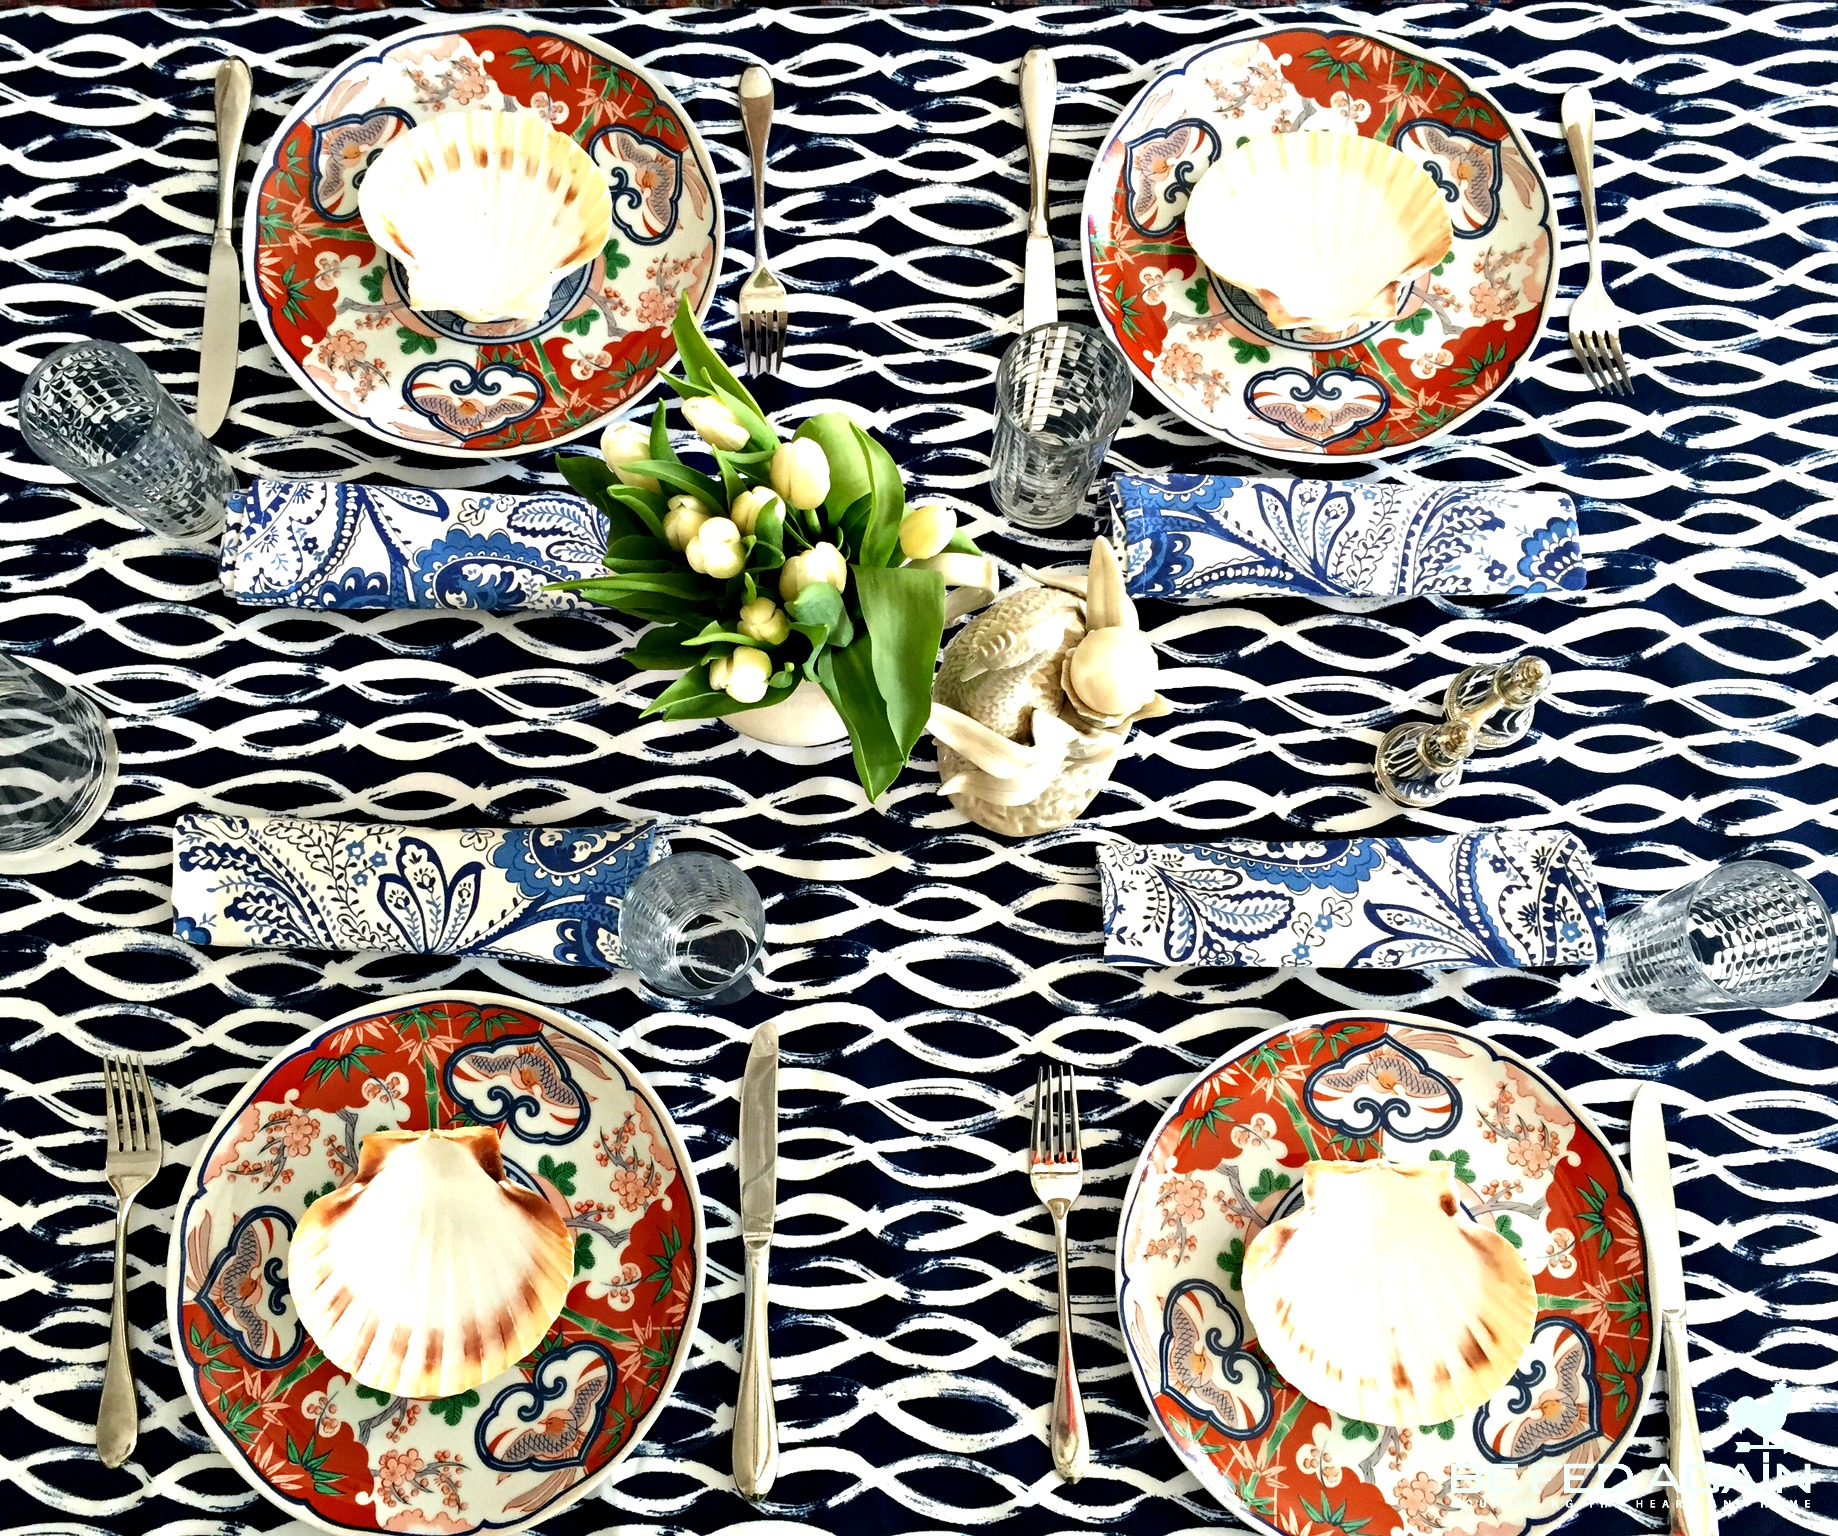 spring tablesetting - blues inspired top view